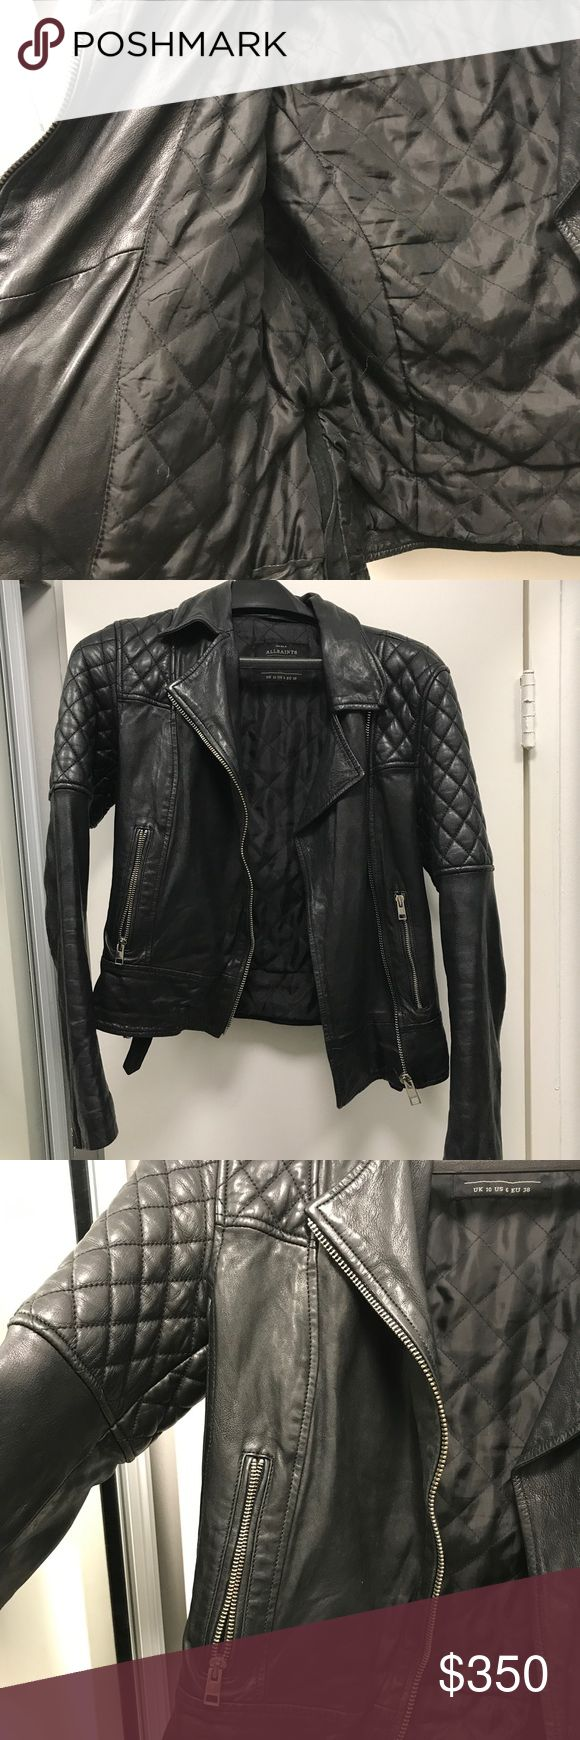 All saints black quilted 100% real leather jacket Quilted black leather jacket from All Saints Very soft like calf skin leather but exact type not defined  Absolutely no rips, spots, stains or damage on the outside leather or inside layer...besides a very small part at the bottom front (blends in-see last photo) little bit of ware and creasing like real leather normally gets  Very minimal tarnishing on the zippers as shown in photo and you can't notice it unless you're in very bright light…